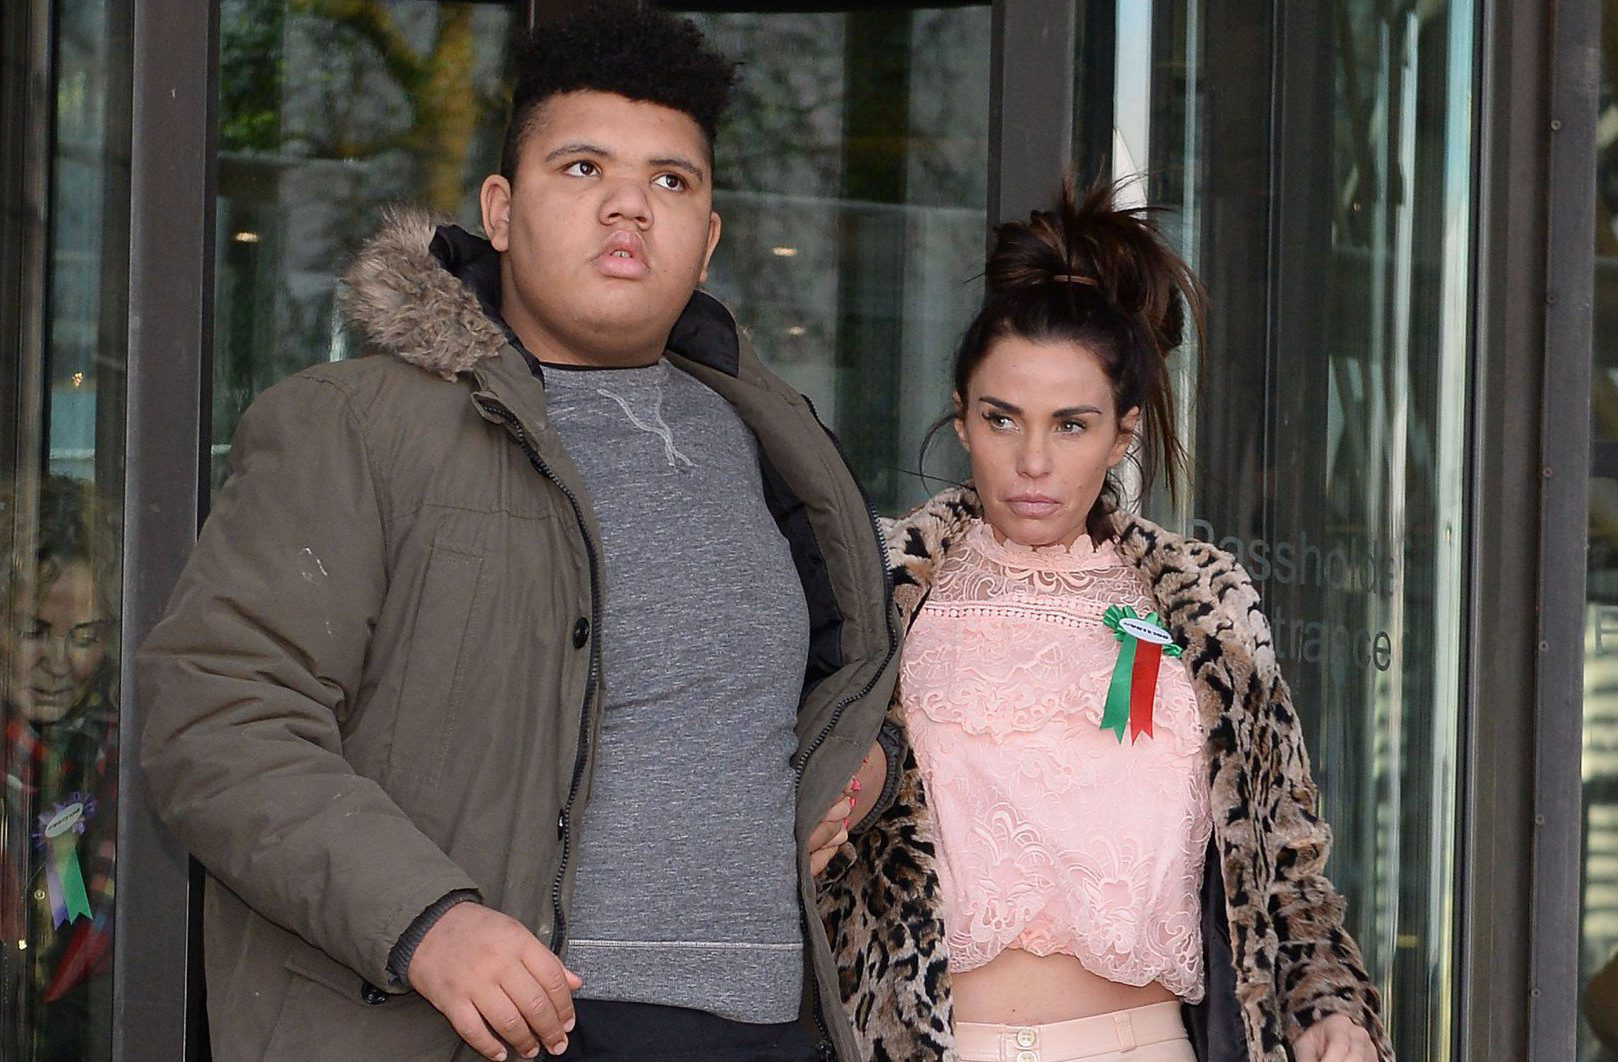 Katie Price with her son Harvey leaves Portcullis House in London after giving evidence to the Commons Petitions Committee where she called for online abuse to be made a specific offence.